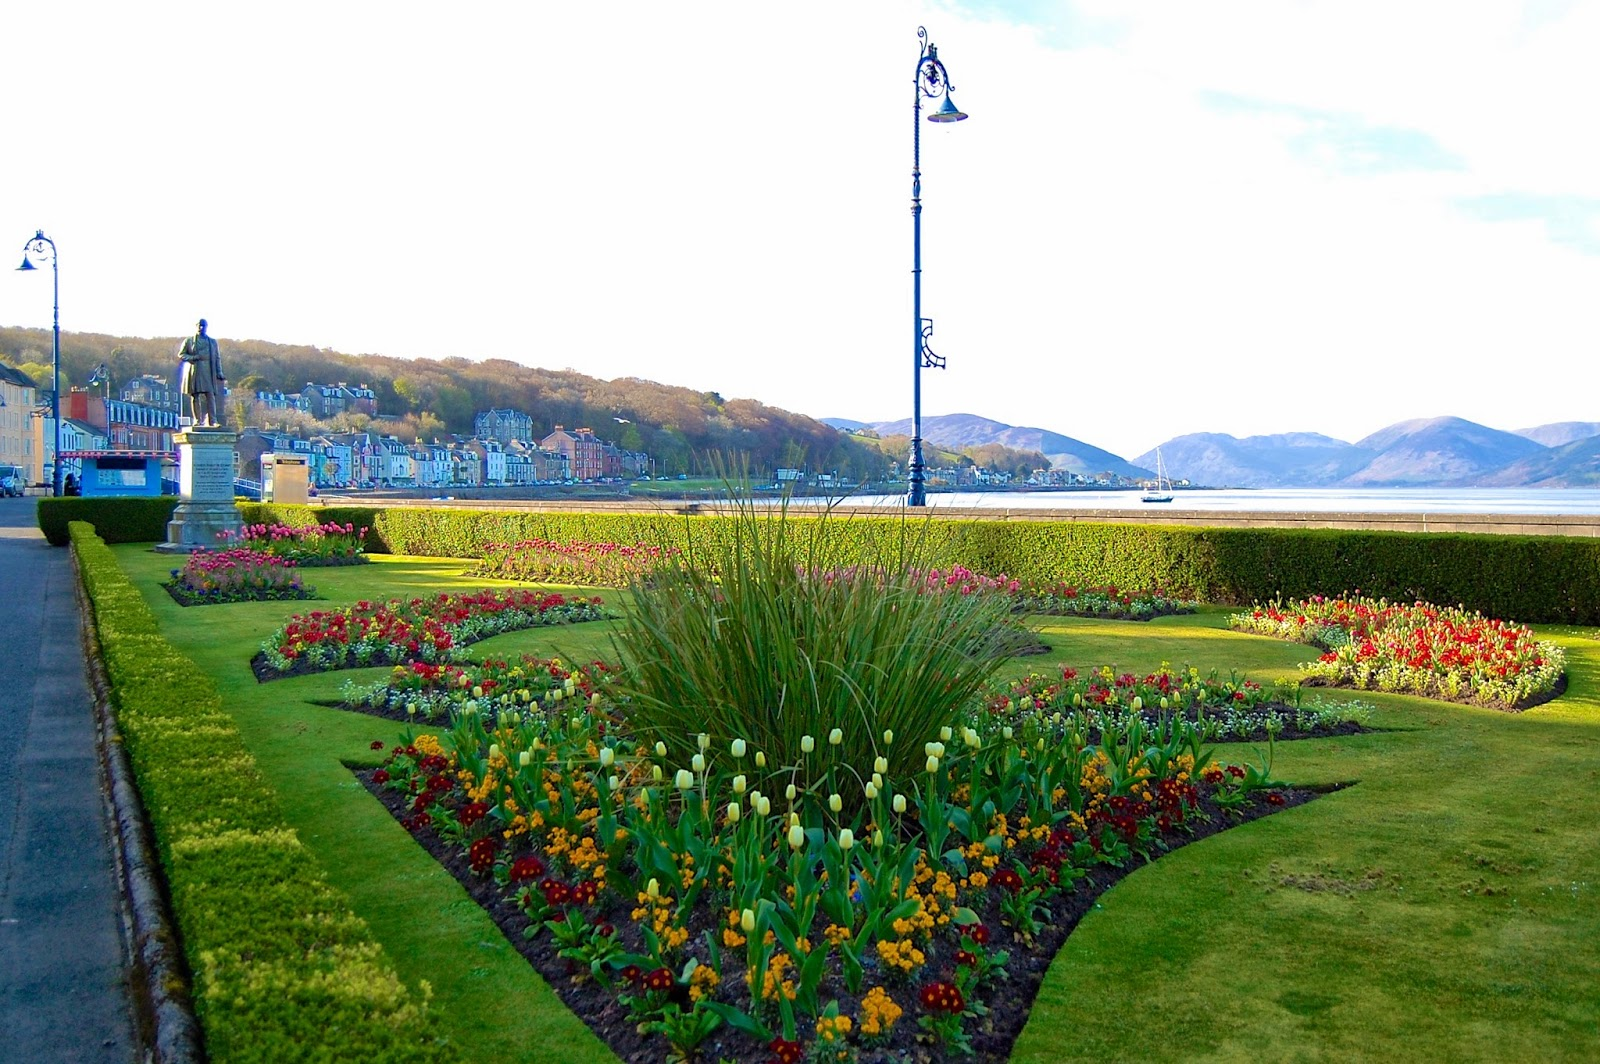 Ornamental gardens on Rothesay's promenade